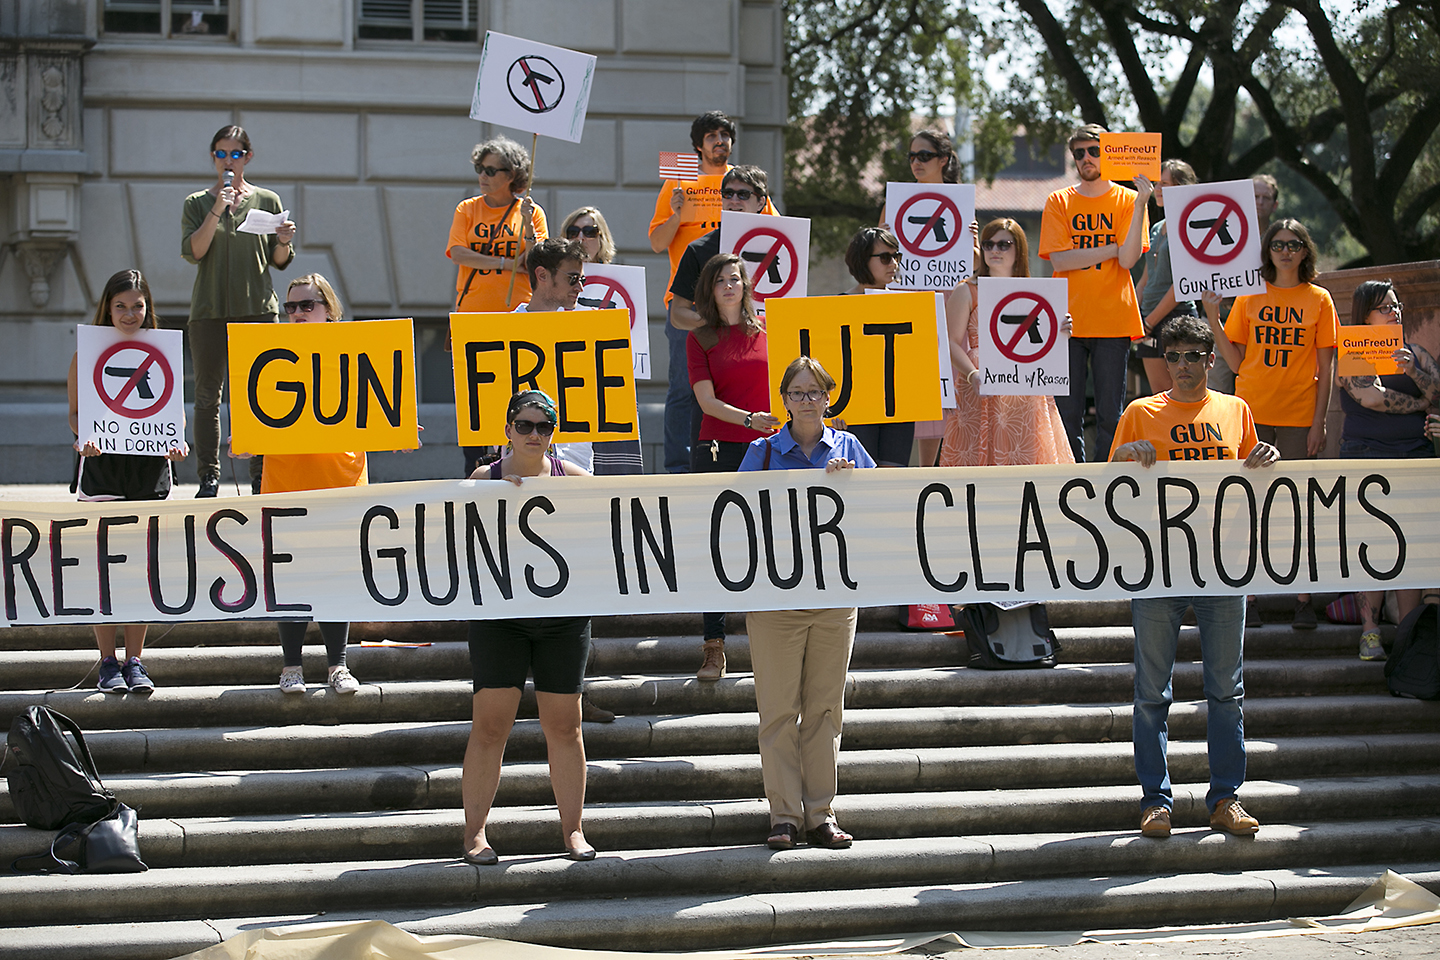 Protestors gathered on the West Mall of the University of Texas campus to oppose a new state law that expands the rights of concealed handgun license holders to carry their weapons on public college campuses and as of August 1, 2016, they can carry in campus buildings. Schools can however designate limited gun-free zones. RALPH BARRERA/ AMERICAN-STATESMAN